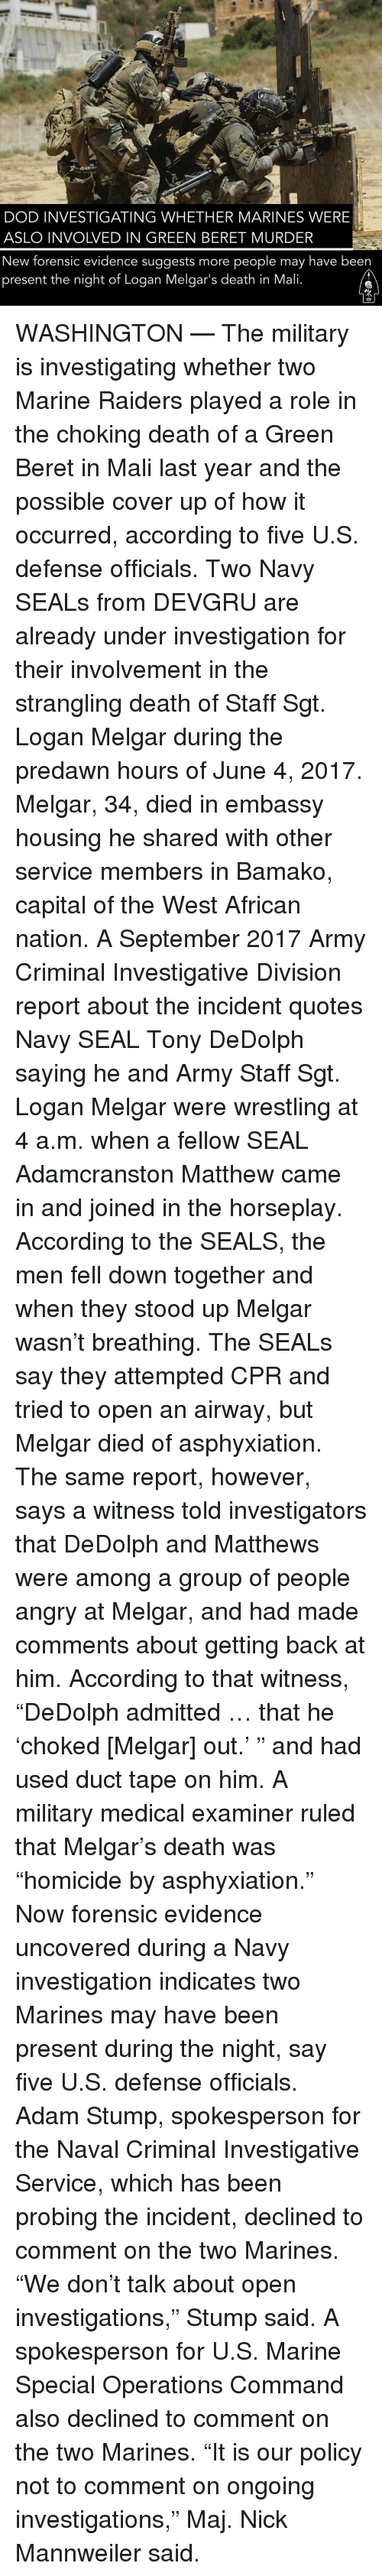 """Memes, Wrestling, and Army: DOD INVESTIGATING WHETHER MARINES WERE  ASLO INVOLVED IN GREEN BERET MURDER  New forensic evidence suggests more people may have been  present the night of Logan Melgar's death in Mali WASHINGTON — The military is investigating whether two Marine Raiders played a role in the choking death of a Green Beret in Mali last year and the possible cover up of how it occurred, according to five U.S. defense officials. Two Navy SEALs from DEVGRU are already under investigation for their involvement in the strangling death of Staff Sgt. Logan Melgar during the predawn hours of June 4, 2017. Melgar, 34, died in embassy housing he shared with other service members in Bamako, capital of the West African nation. A September 2017 Army Criminal Investigative Division report about the incident quotes Navy SEAL Tony DeDolph saying he and Army Staff Sgt. Logan Melgar were wrestling at 4 a.m. when a fellow SEAL Adamcranston Matthew came in and joined in the horseplay. According to the SEALS, the men fell down together and when they stood up Melgar wasn't breathing. The SEALs say they attempted CPR and tried to open an airway, but Melgar died of asphyxiation. The same report, however, says a witness told investigators that DeDolph and Matthews were among a group of people angry at Melgar, and had made comments about getting back at him. According to that witness, """"DeDolph admitted … that he 'choked [Melgar] out.' """" and had used duct tape on him. A military medical examiner ruled that Melgar's death was """"homicide by asphyxiation."""" Now forensic evidence uncovered during a Navy investigation indicates two Marines may have been present during the night, say five U.S. defense officials. Adam Stump, spokesperson for the Naval Criminal Investigative Service, which has been probing the incident, declined to comment on the two Marines. """"We don't talk about open investigations,"""" Stump said. A spokesperson for U.S. Marine Special Operations Command also declined to comme"""